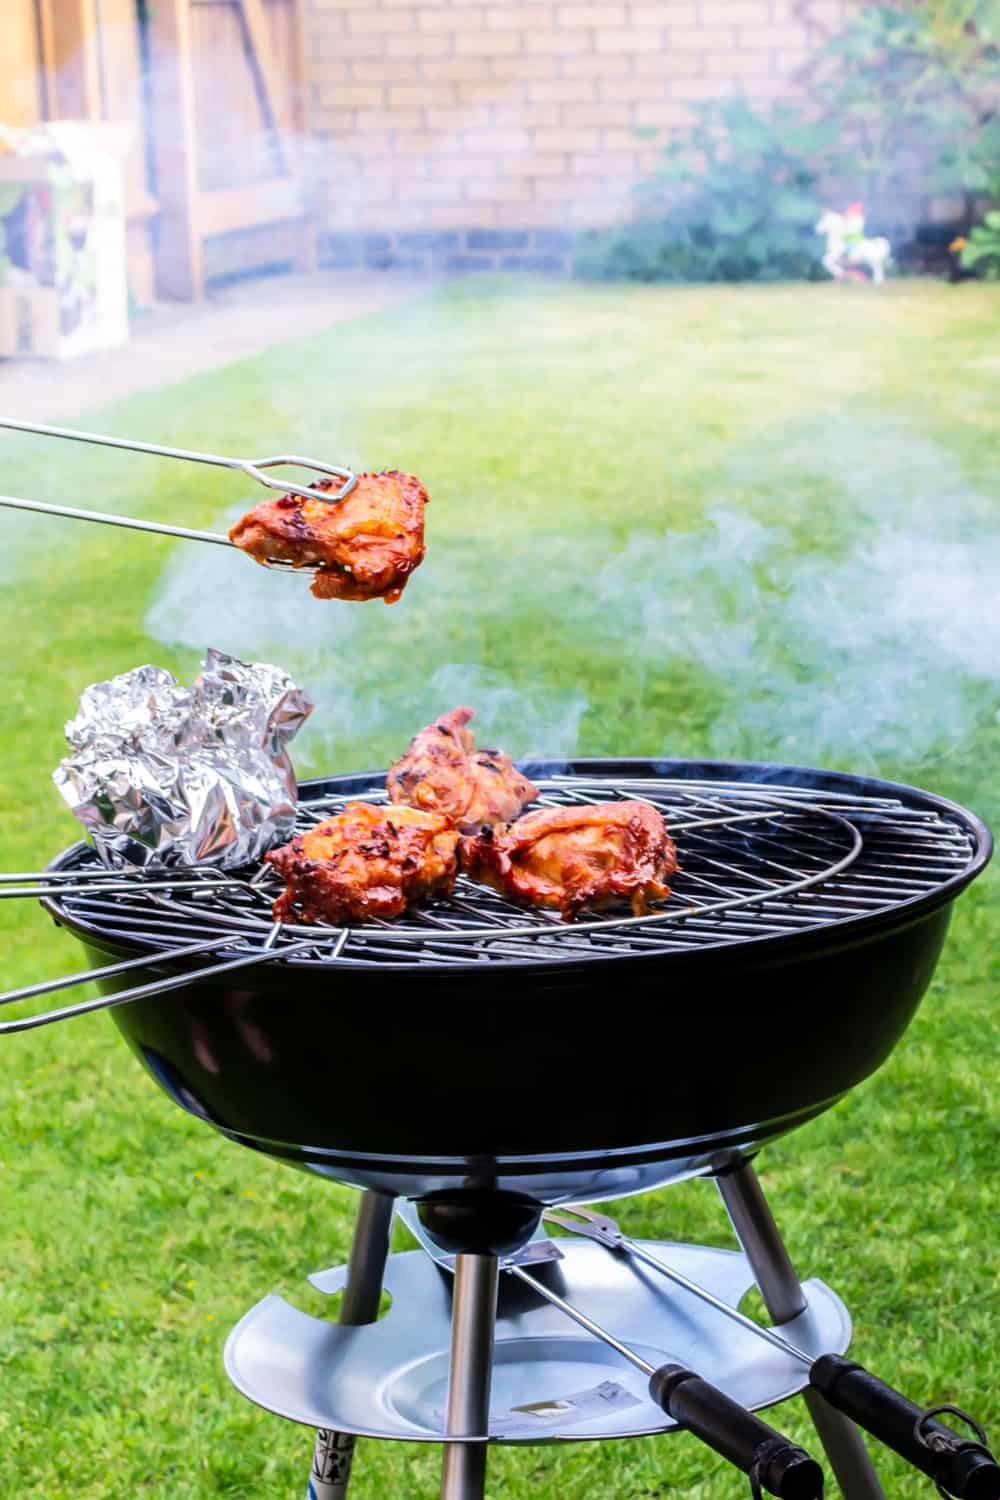 19 Homemade BBQ Grill Plans You Can Build Easily